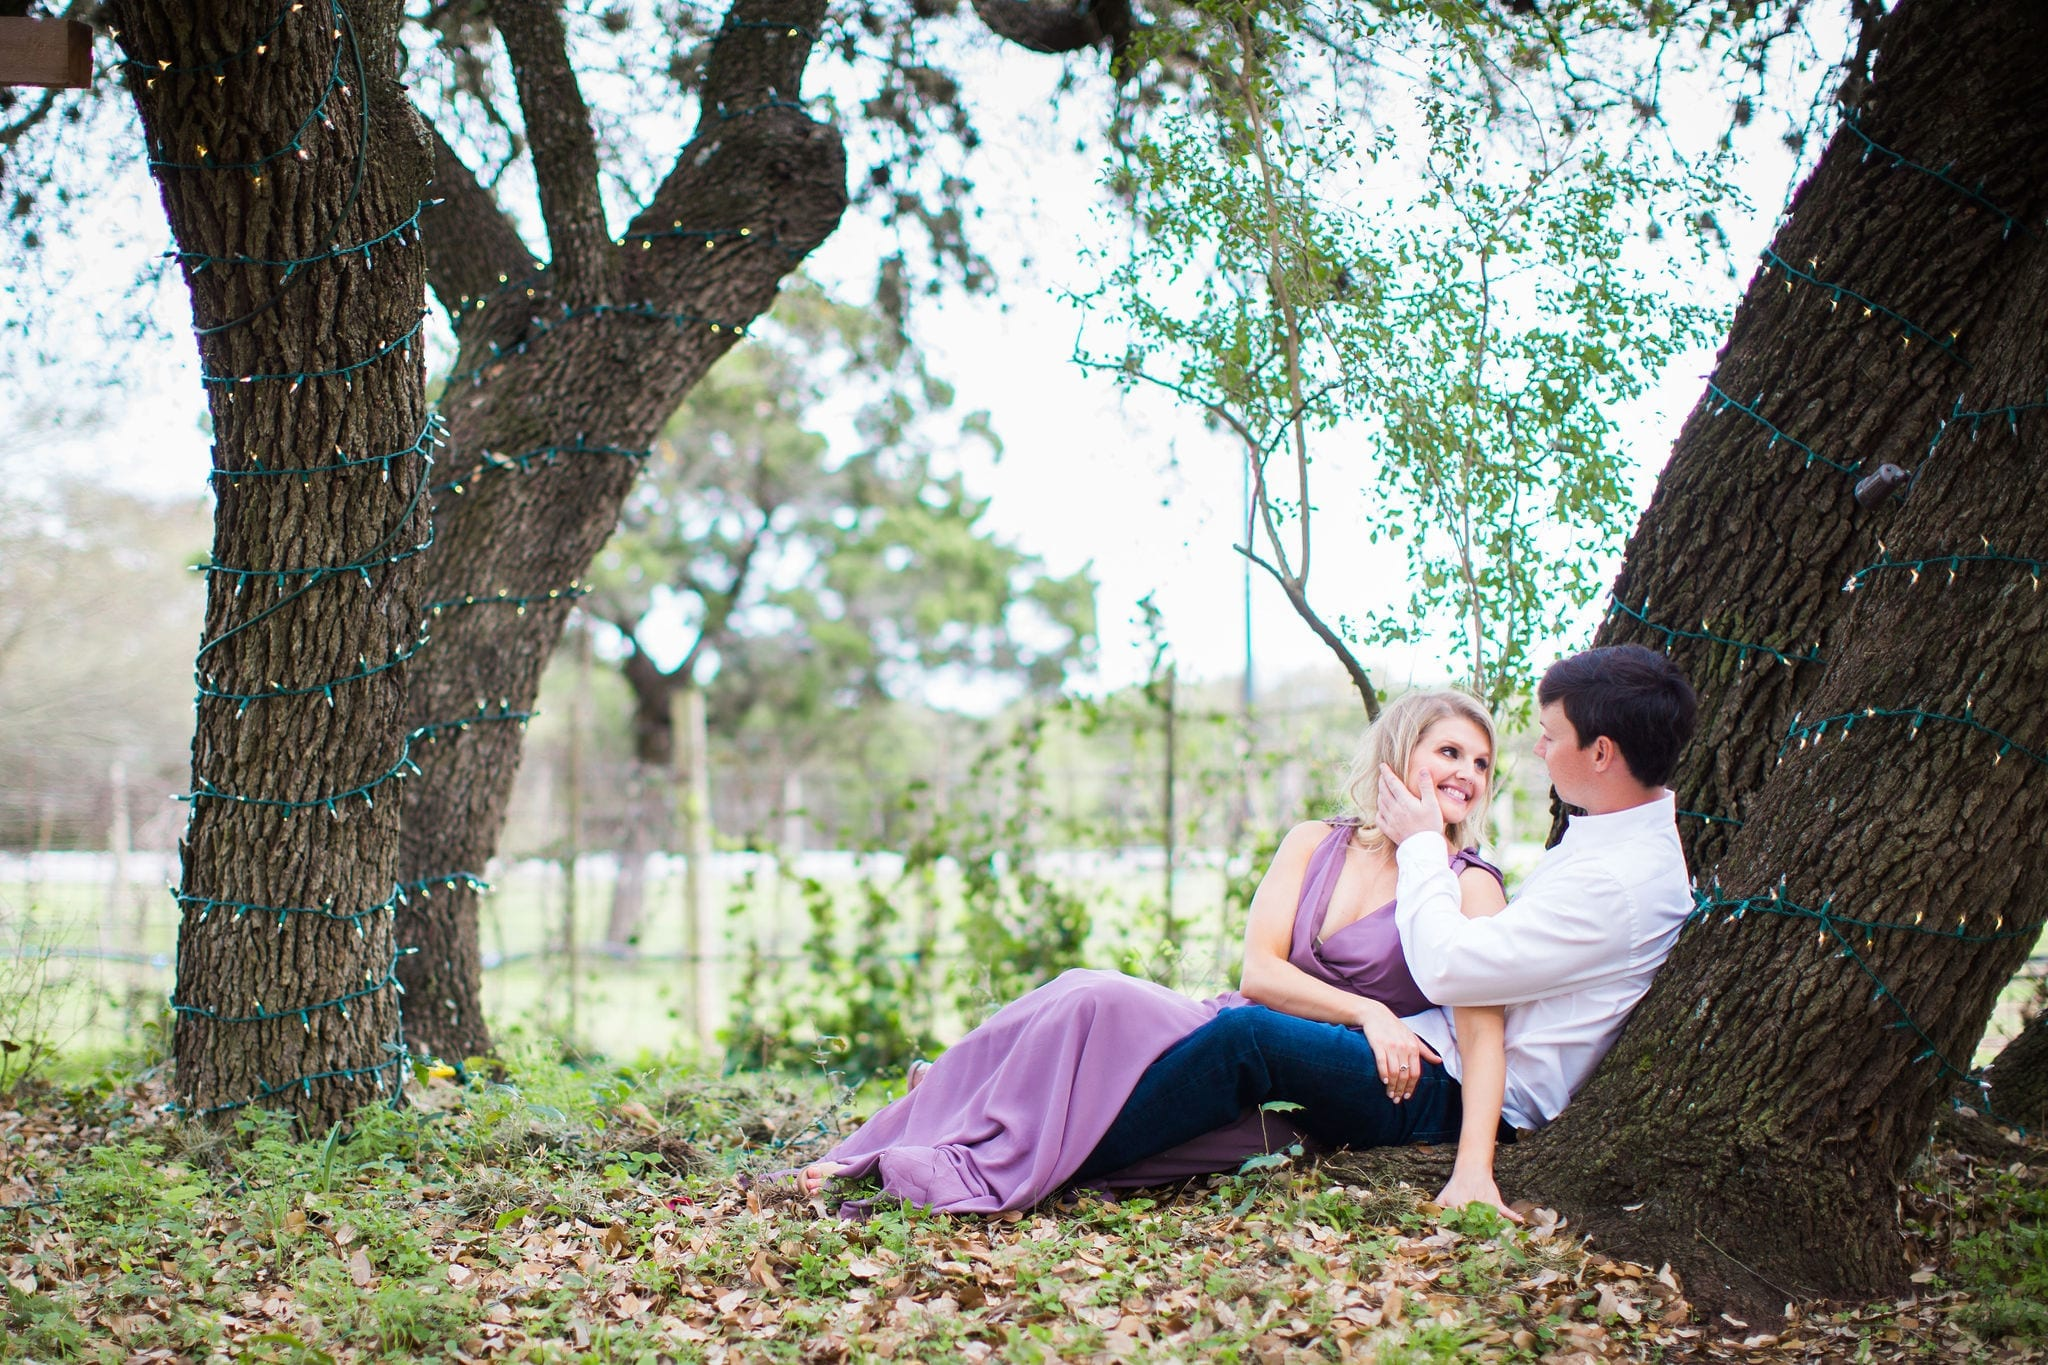 Michele Engagement session at Oak Valley Vineyards sitting in trees